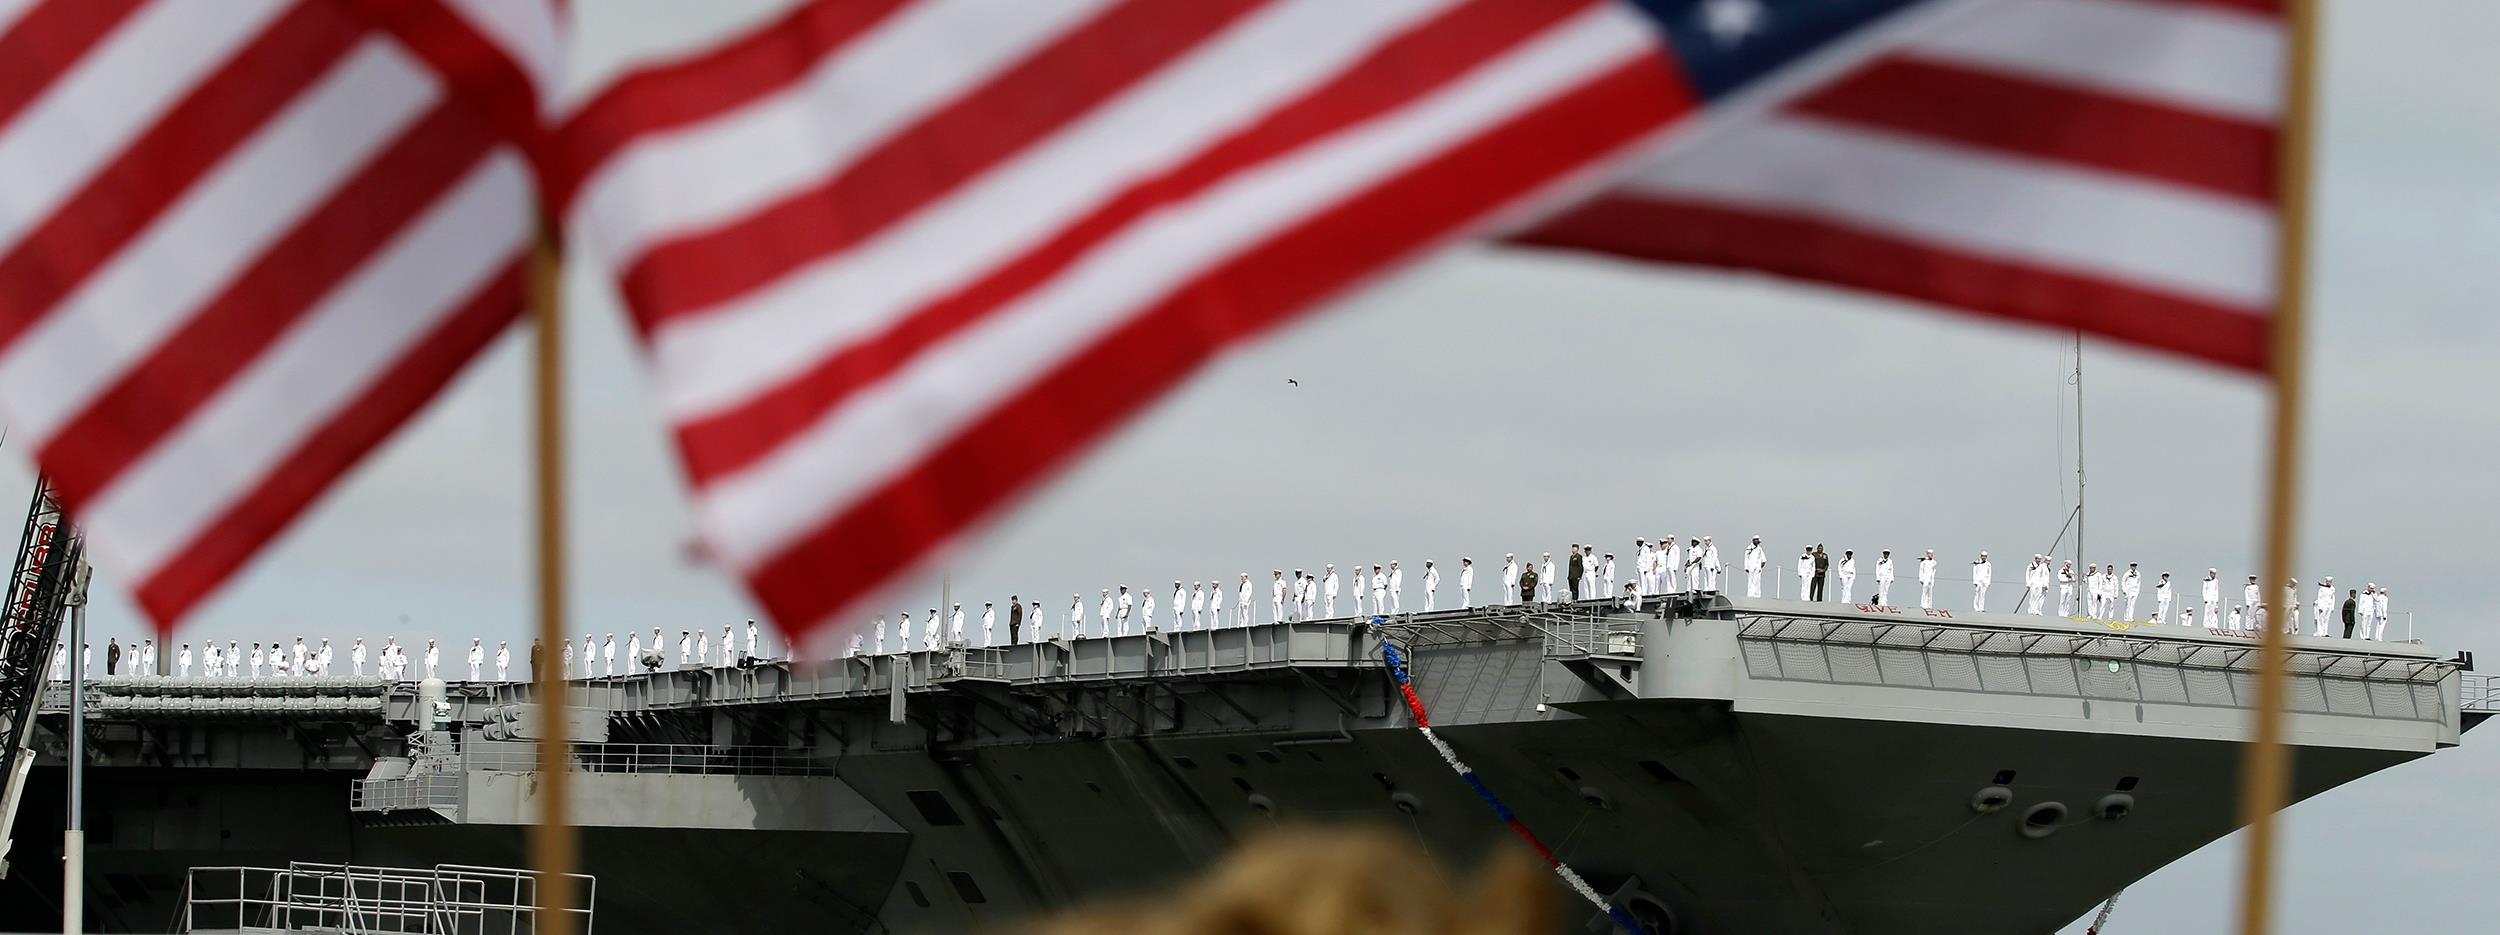 Image: Sailors man the rails as the nuclear aircraft carrier Harry S. Truman approaches the pier at Naval Station Norfolk in Norfolk, Va.